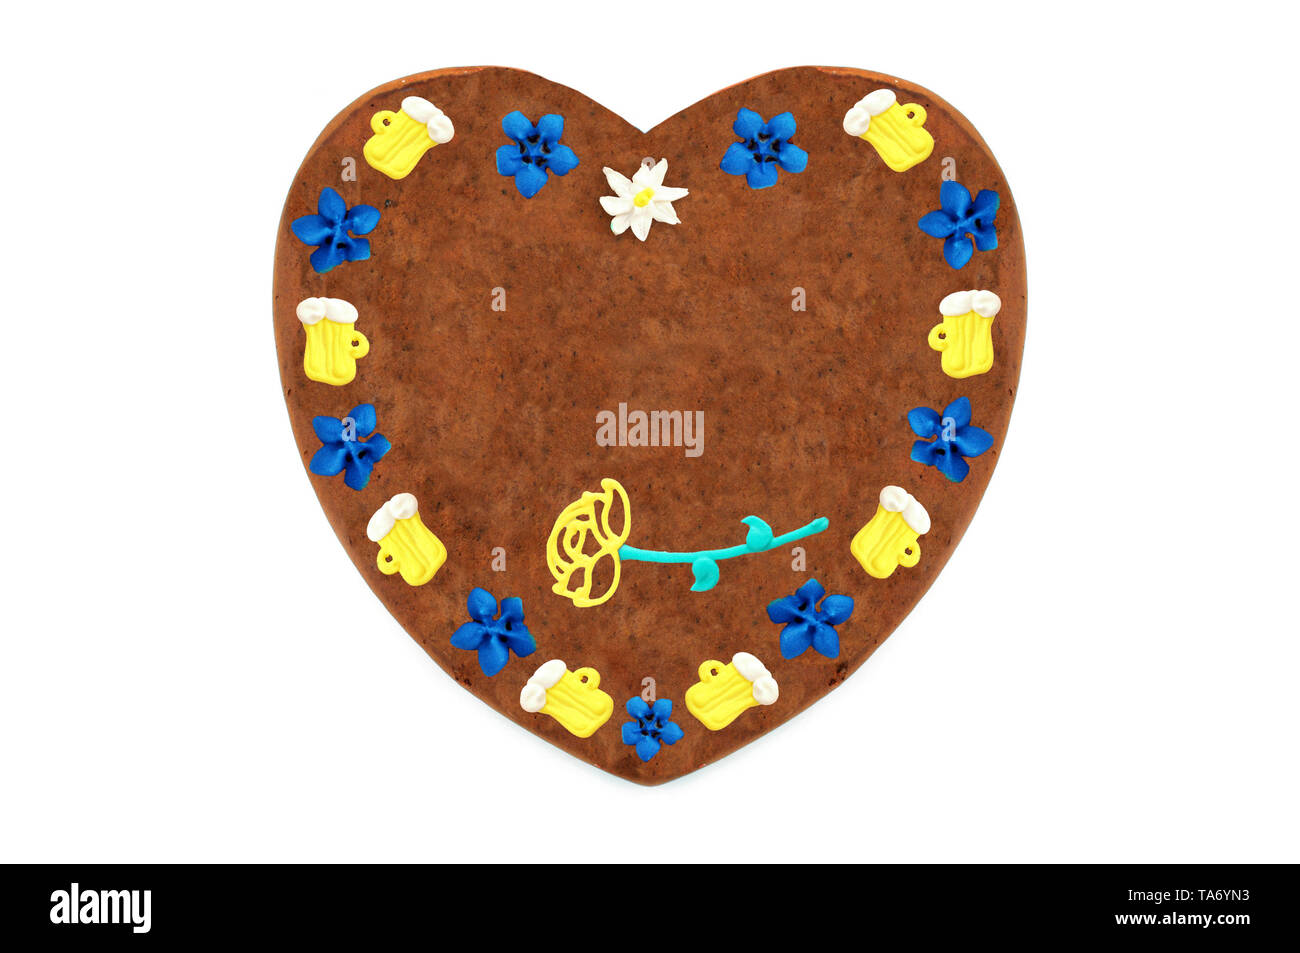 Oktoberfest Gingerbread heart cookie with ornaments and copy space. Oktoberfest is a october fest in munich germany for beer and bavarian food. - Stock Image